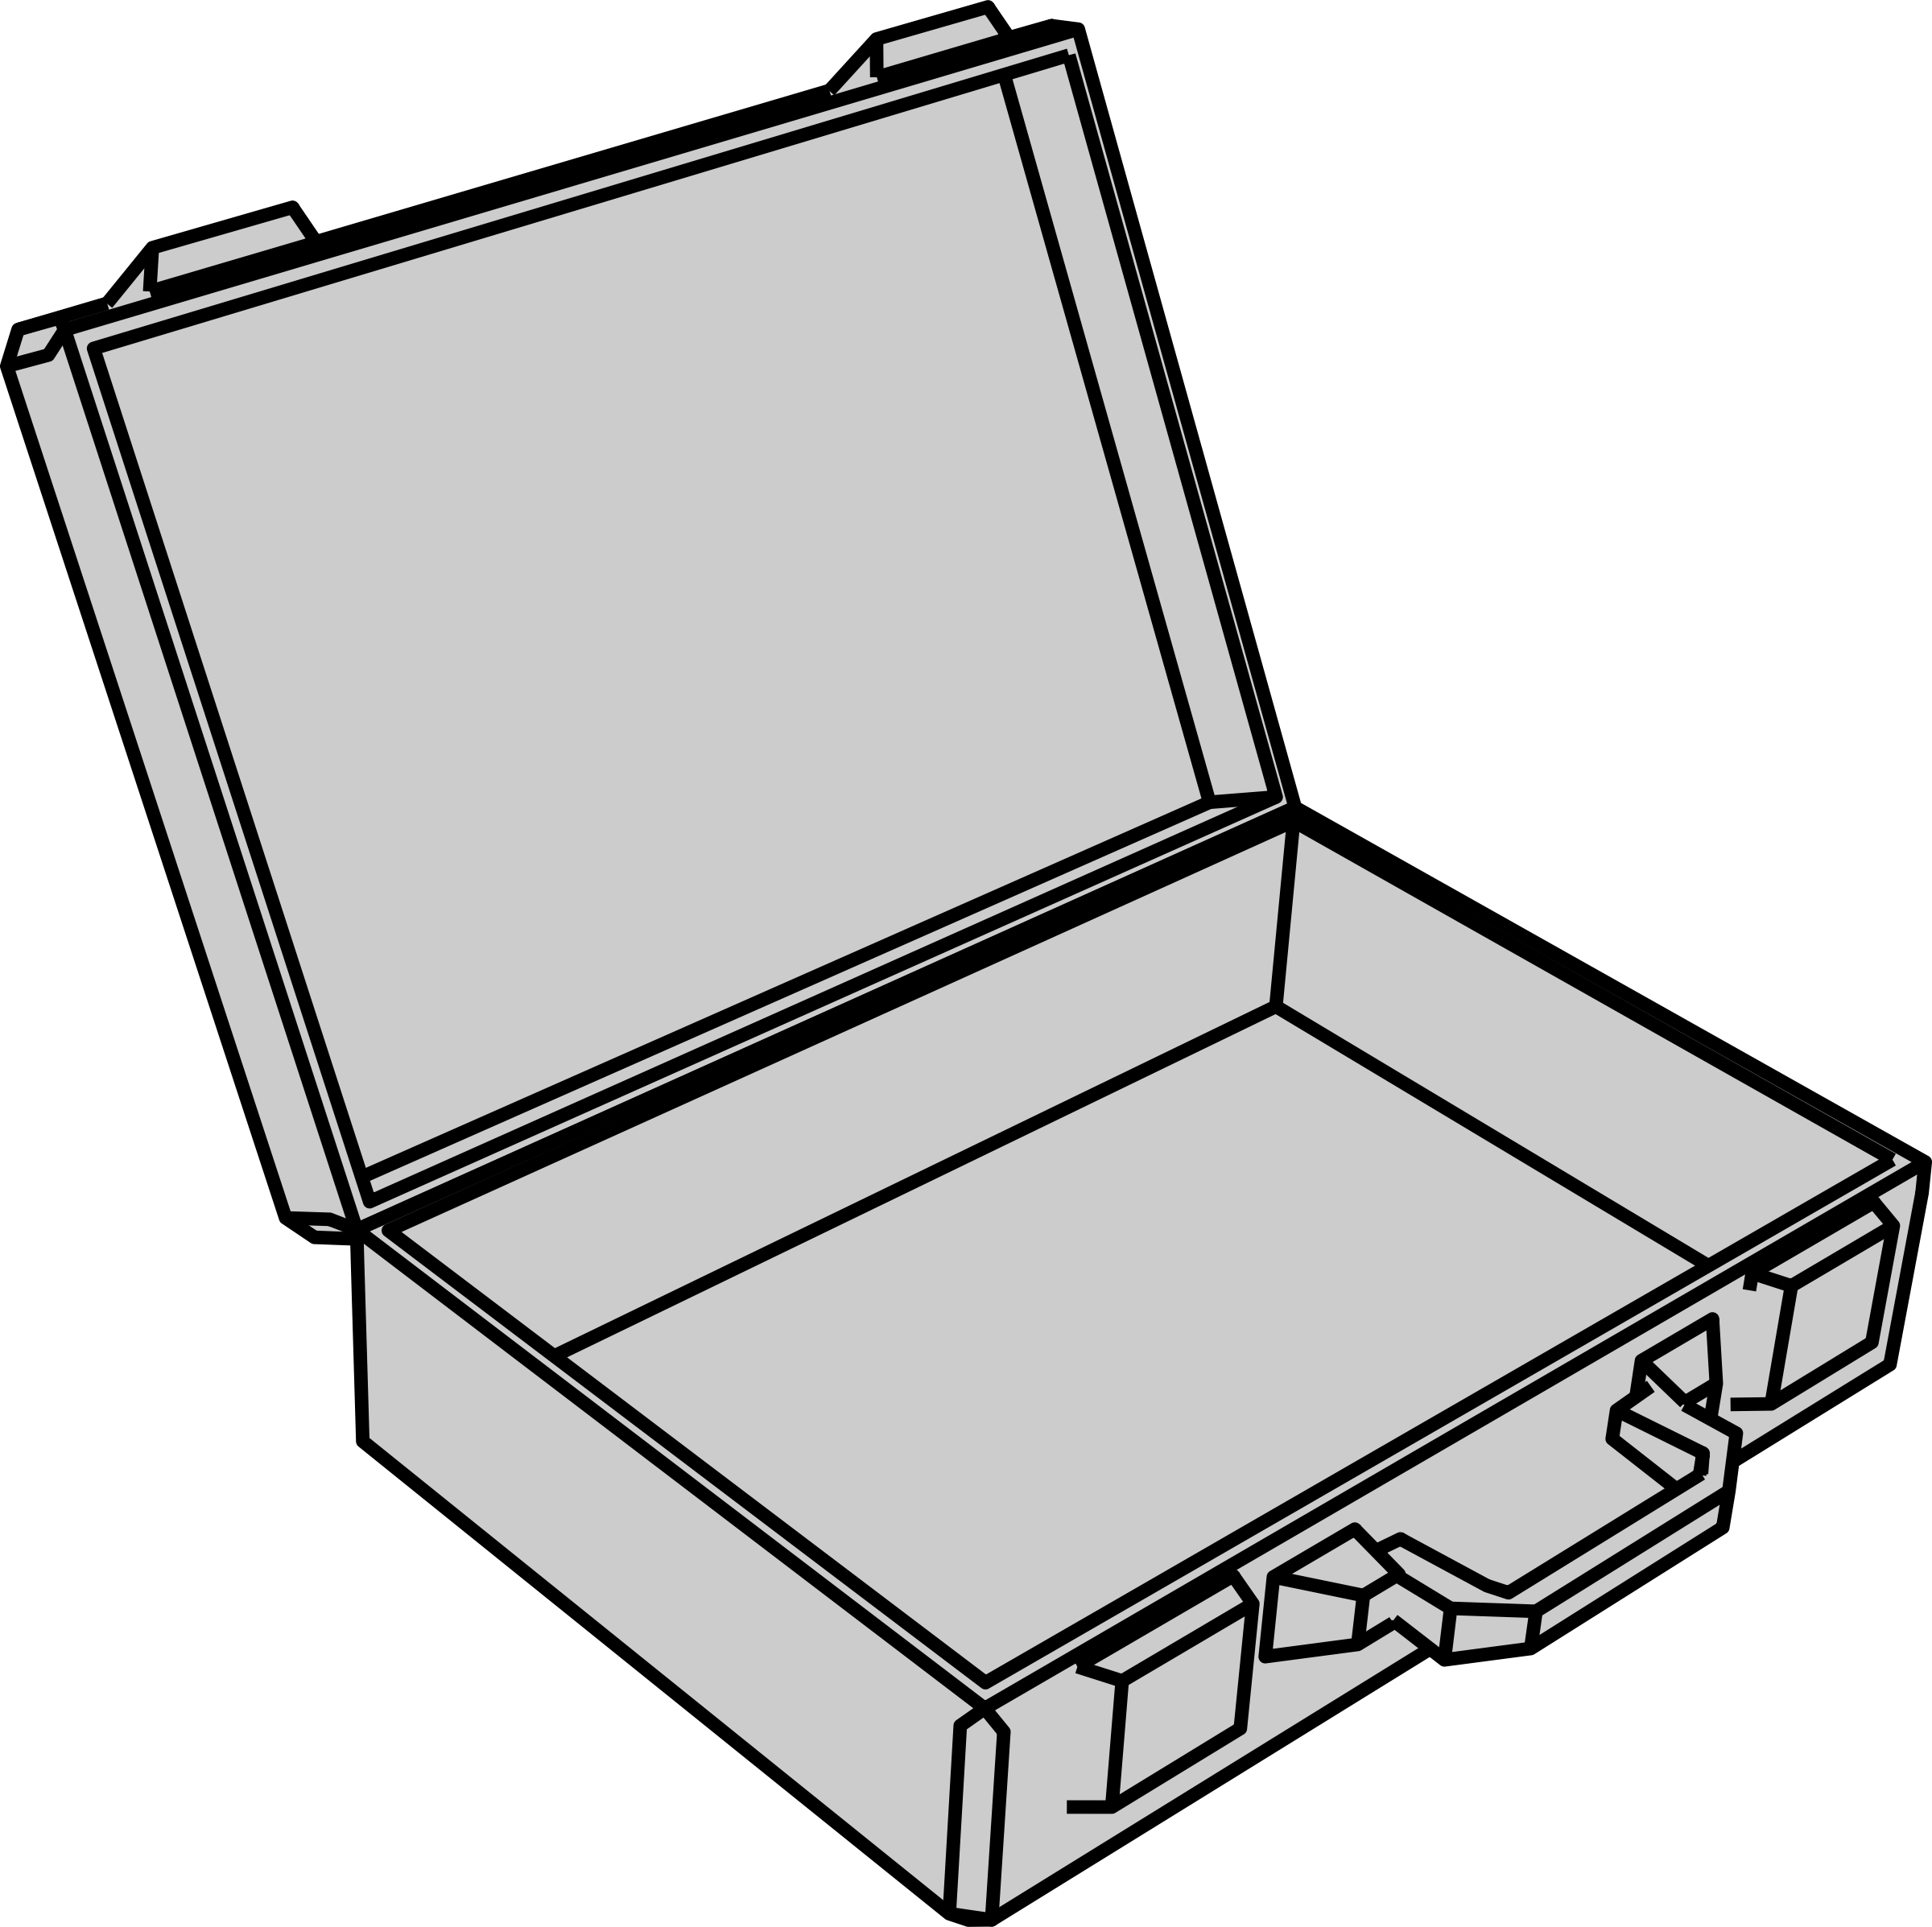 Icons png free and. Luggage clipart empty suitcase